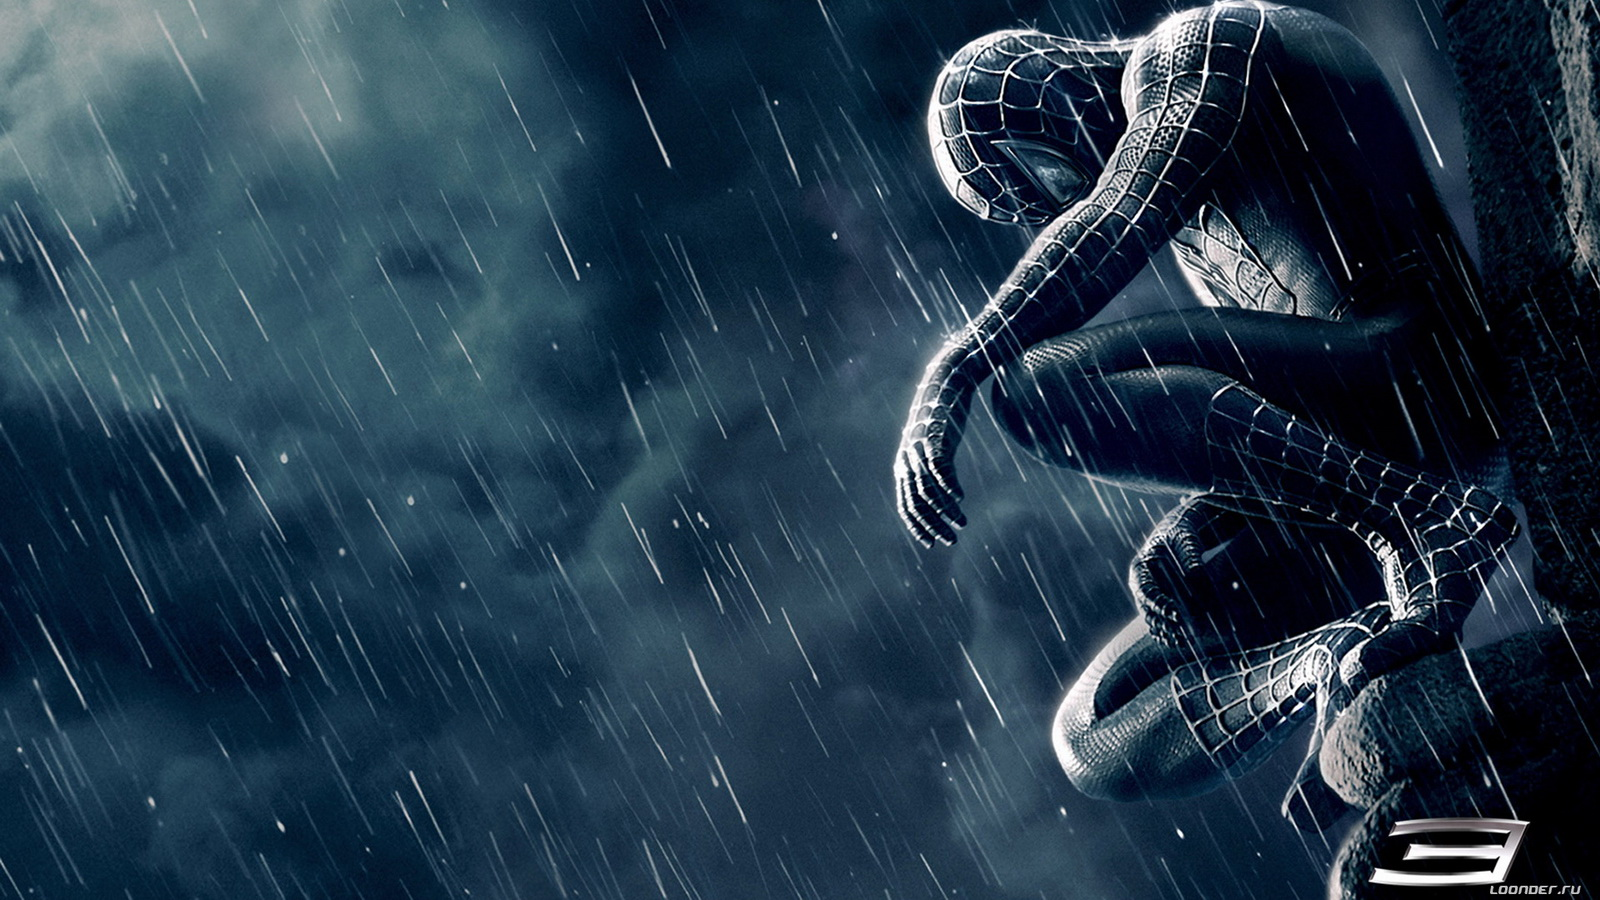 Hollywood Movies Hd Wallpapers: Hollywood Movies HD Wide Screen Wallpapers 2010